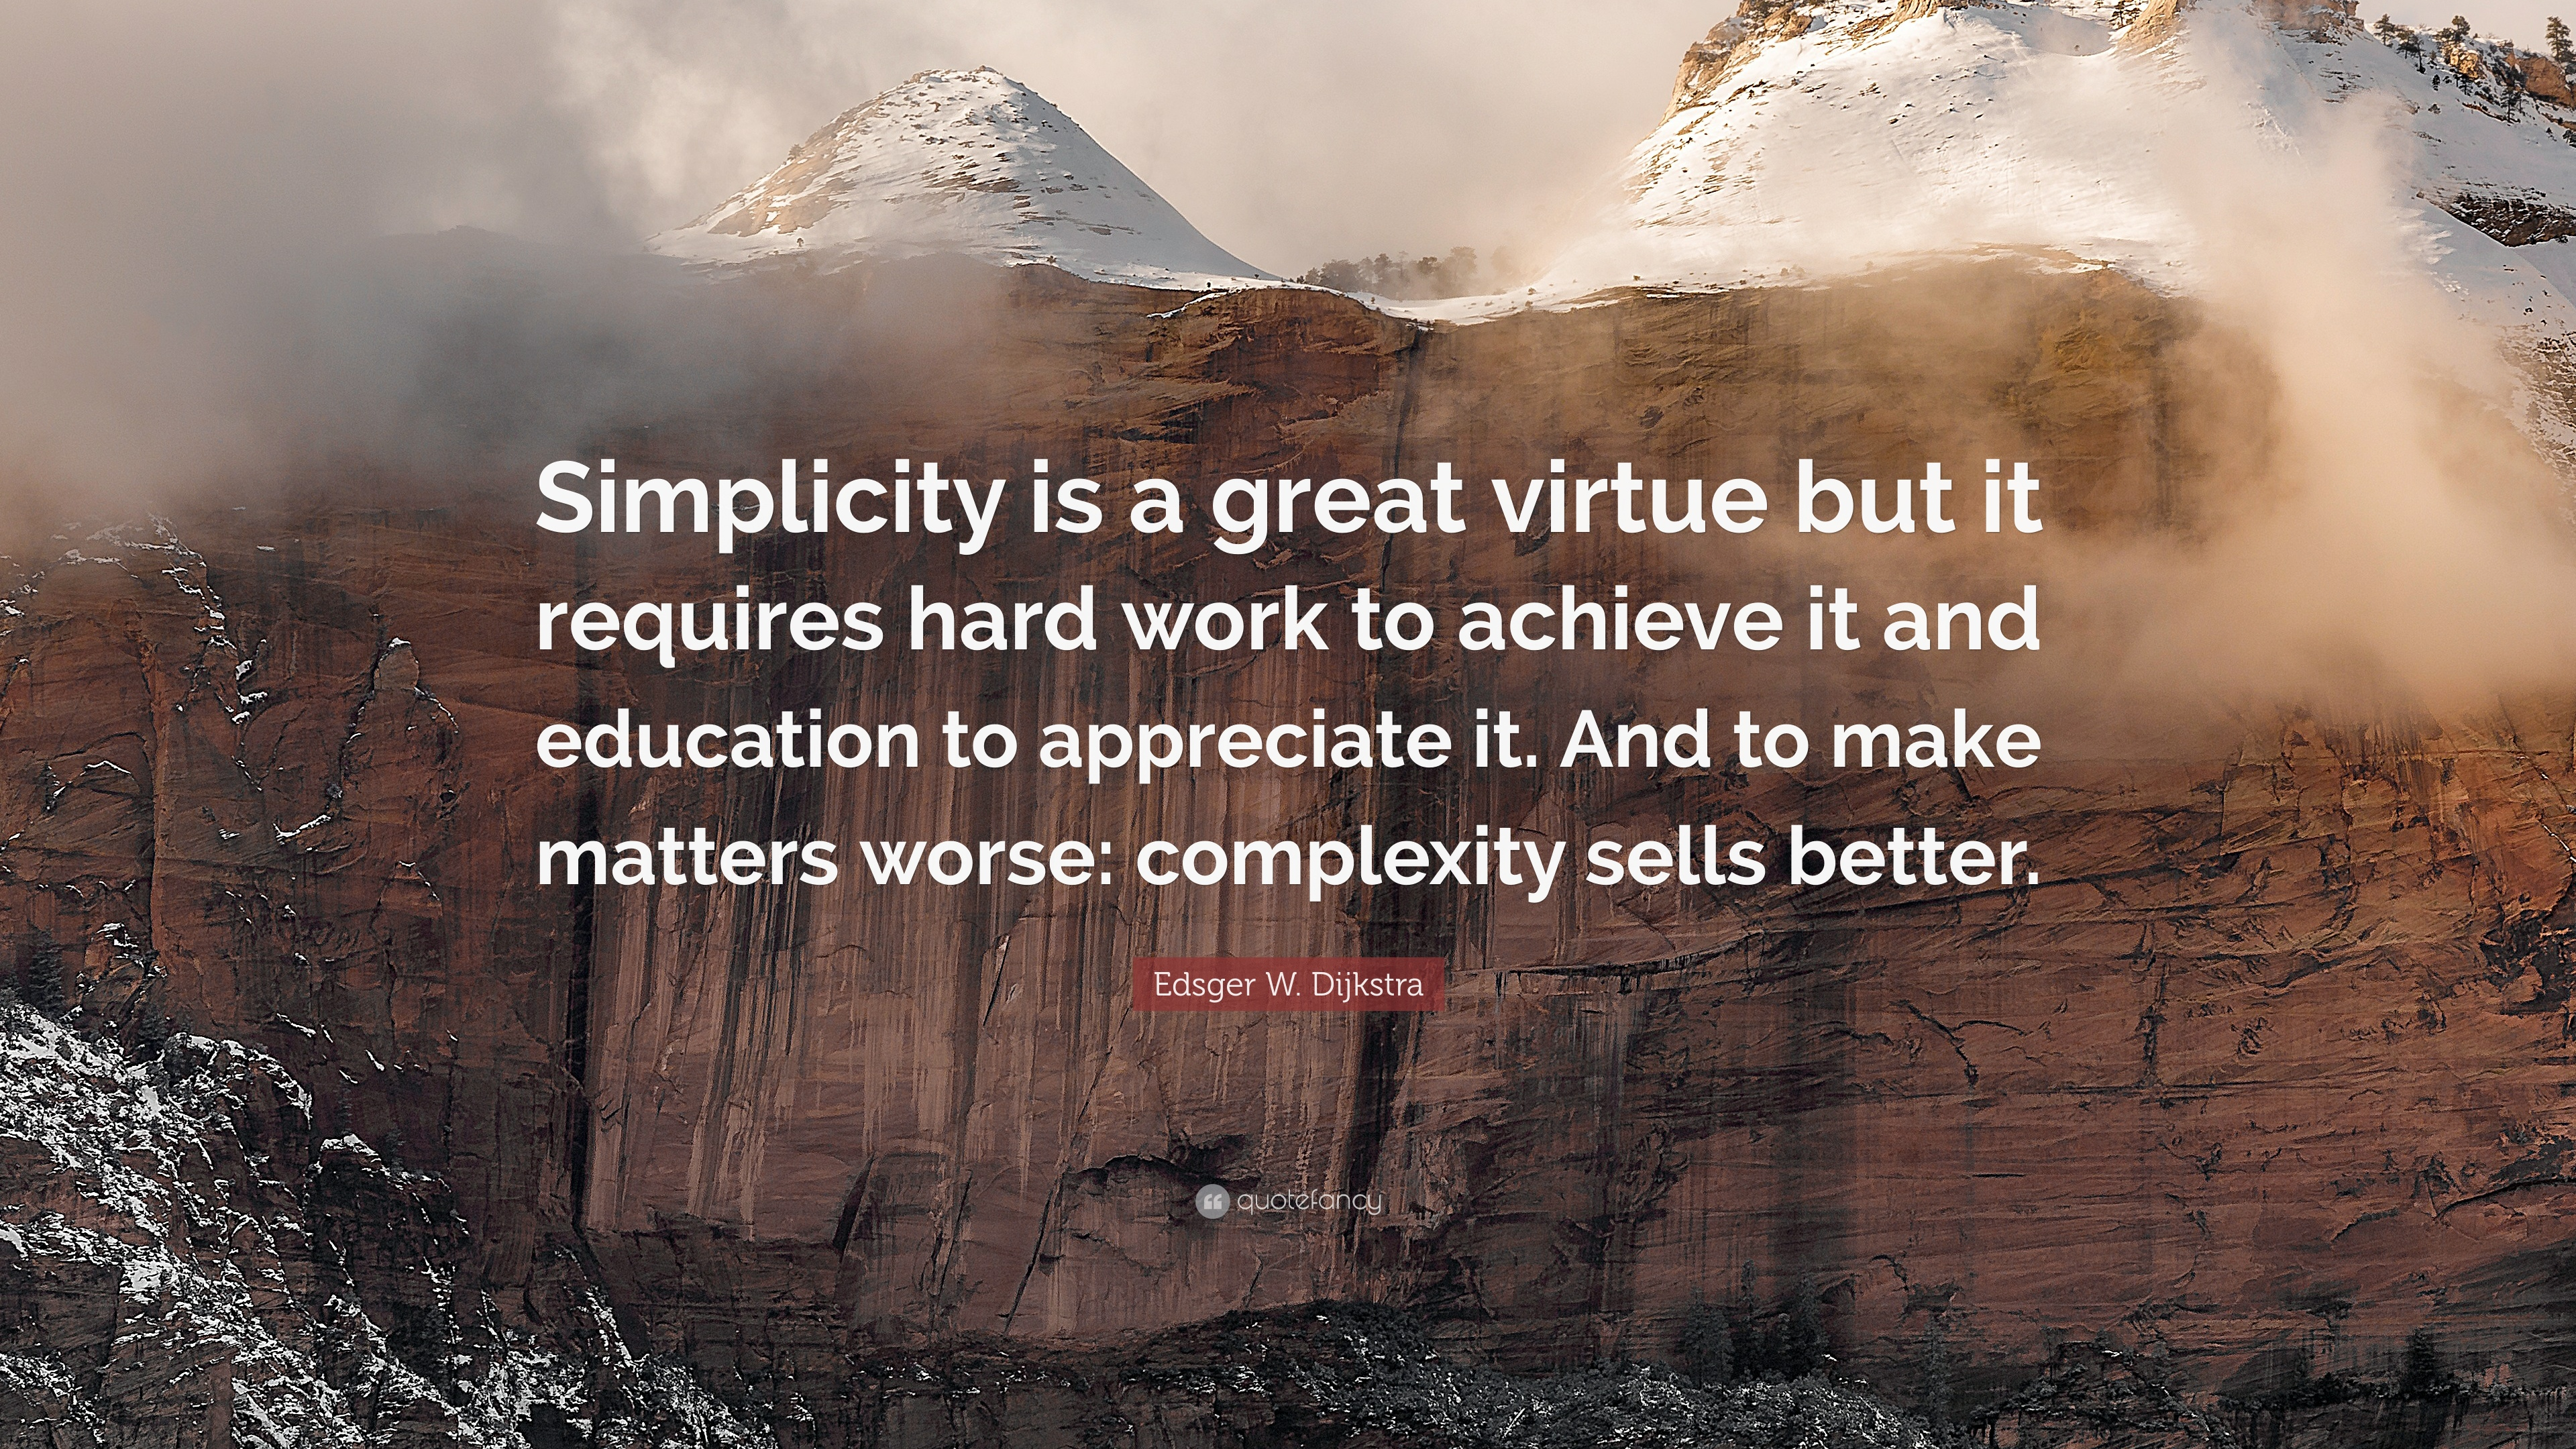 Edsger W Dijkstra Quote Simplicity Is A Great Virtue But It